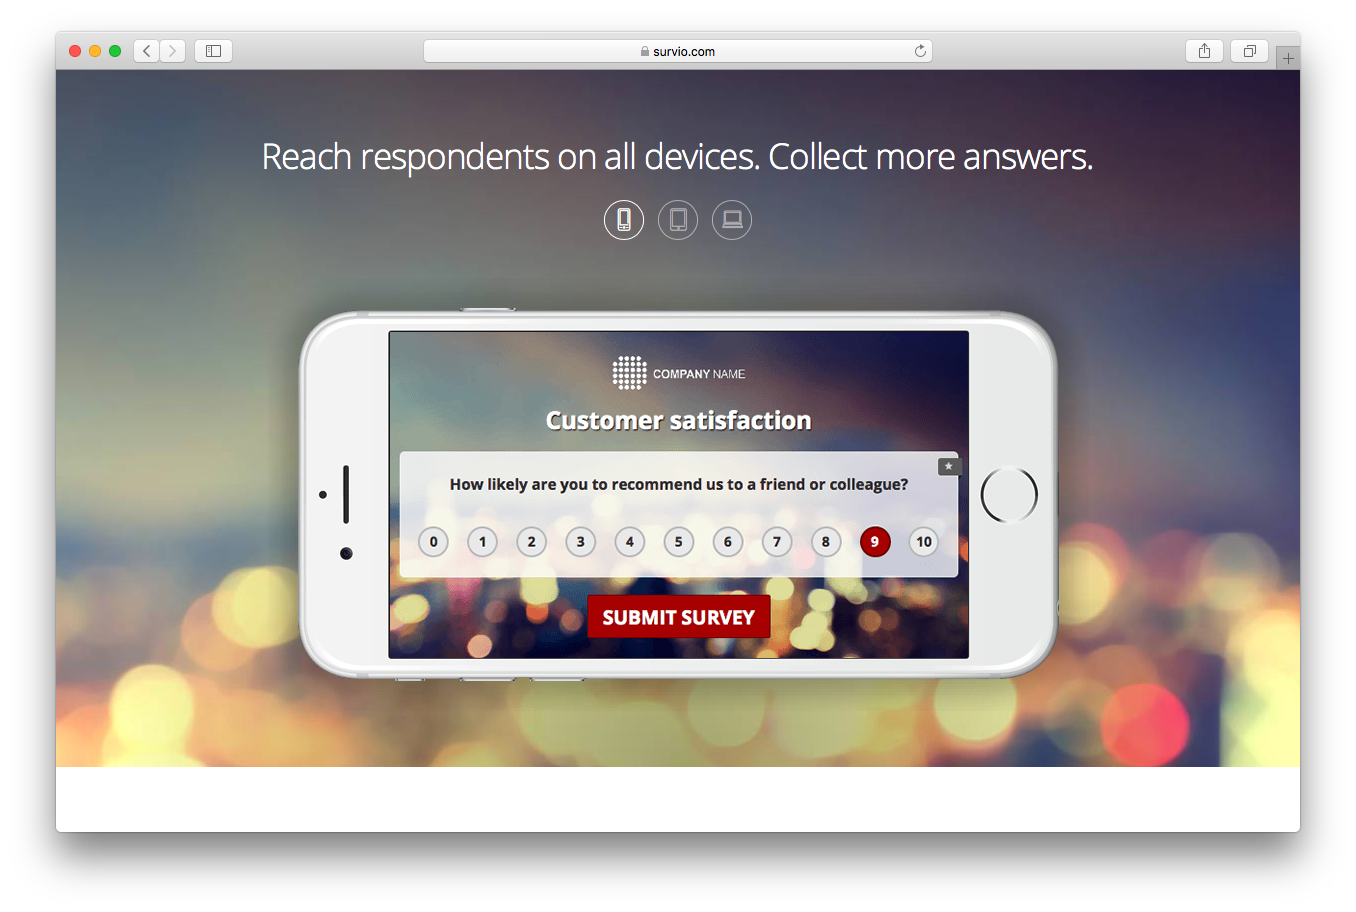 Survey homepage screenshot reach respondents all devices collect more answers mobile tablet pc laptop